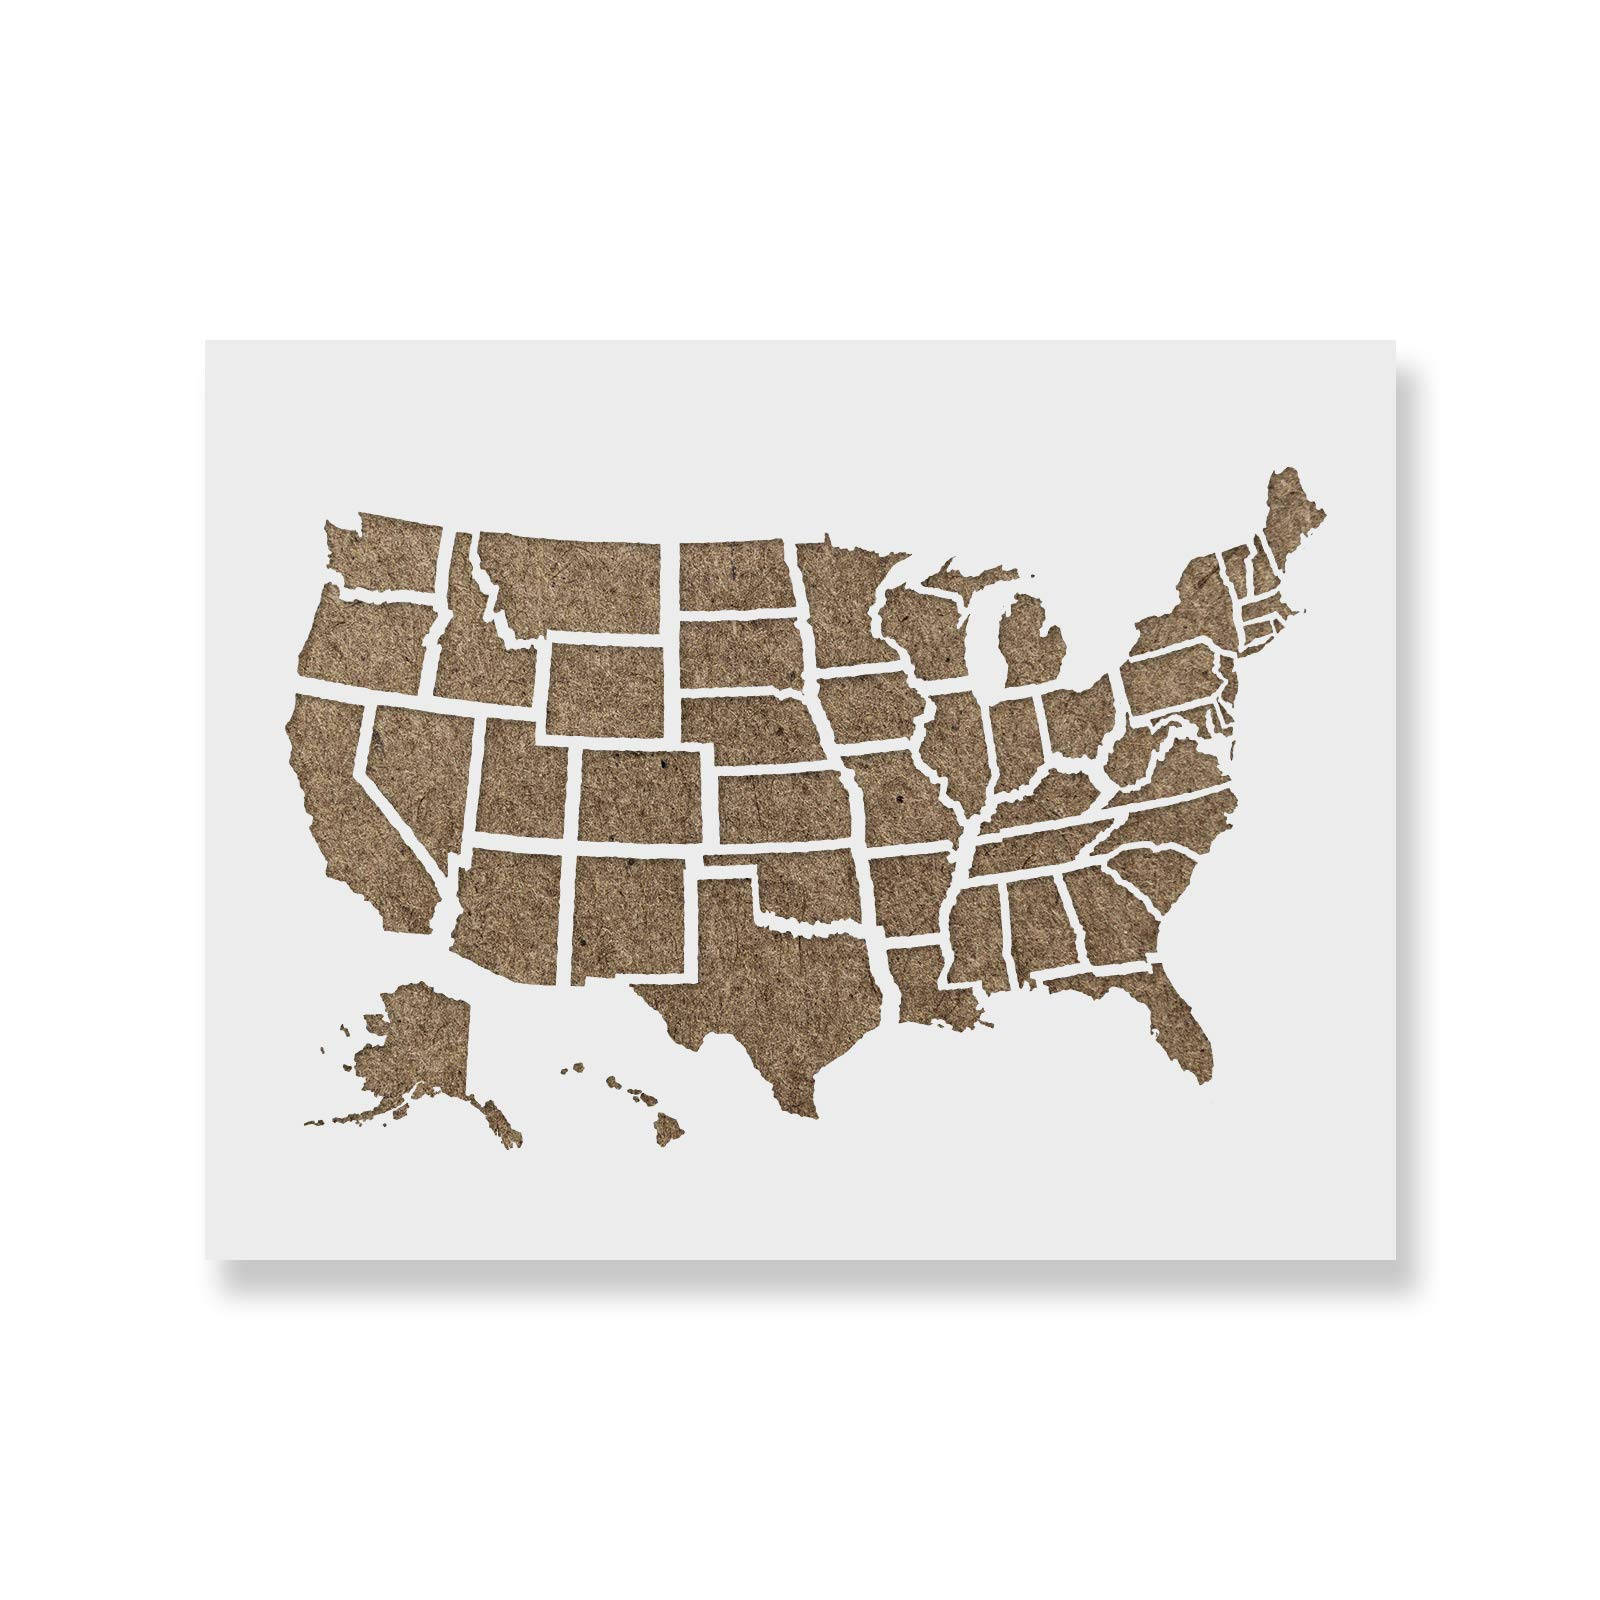 United States Map Outline Stencil Template - Reusable Stencil with Multiple Sizes Available by Stencil Revolution